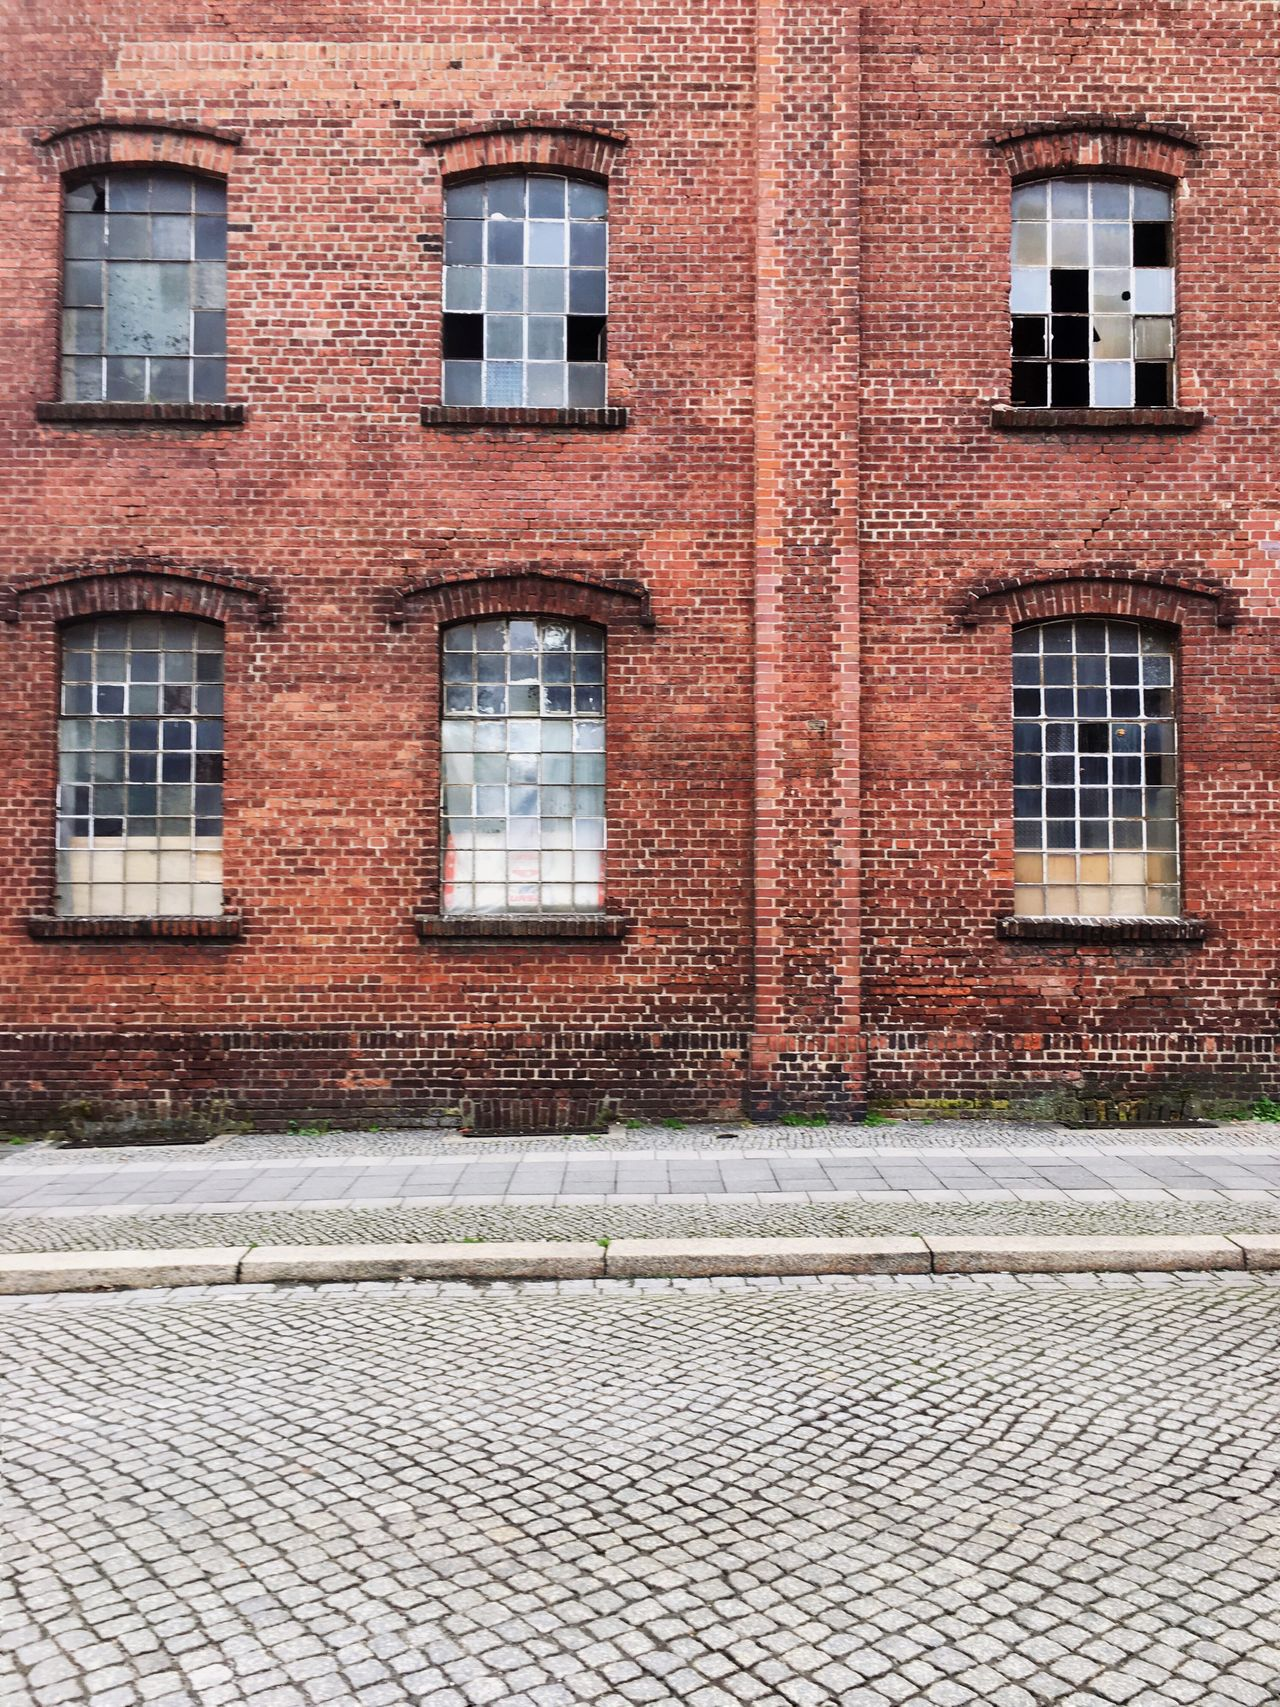 Old Industry Building Germany Görlitz Brick Wall Building Industry Built Structure Architecture No People Brick Wall Working Day Crafts Construction Outdoors Build